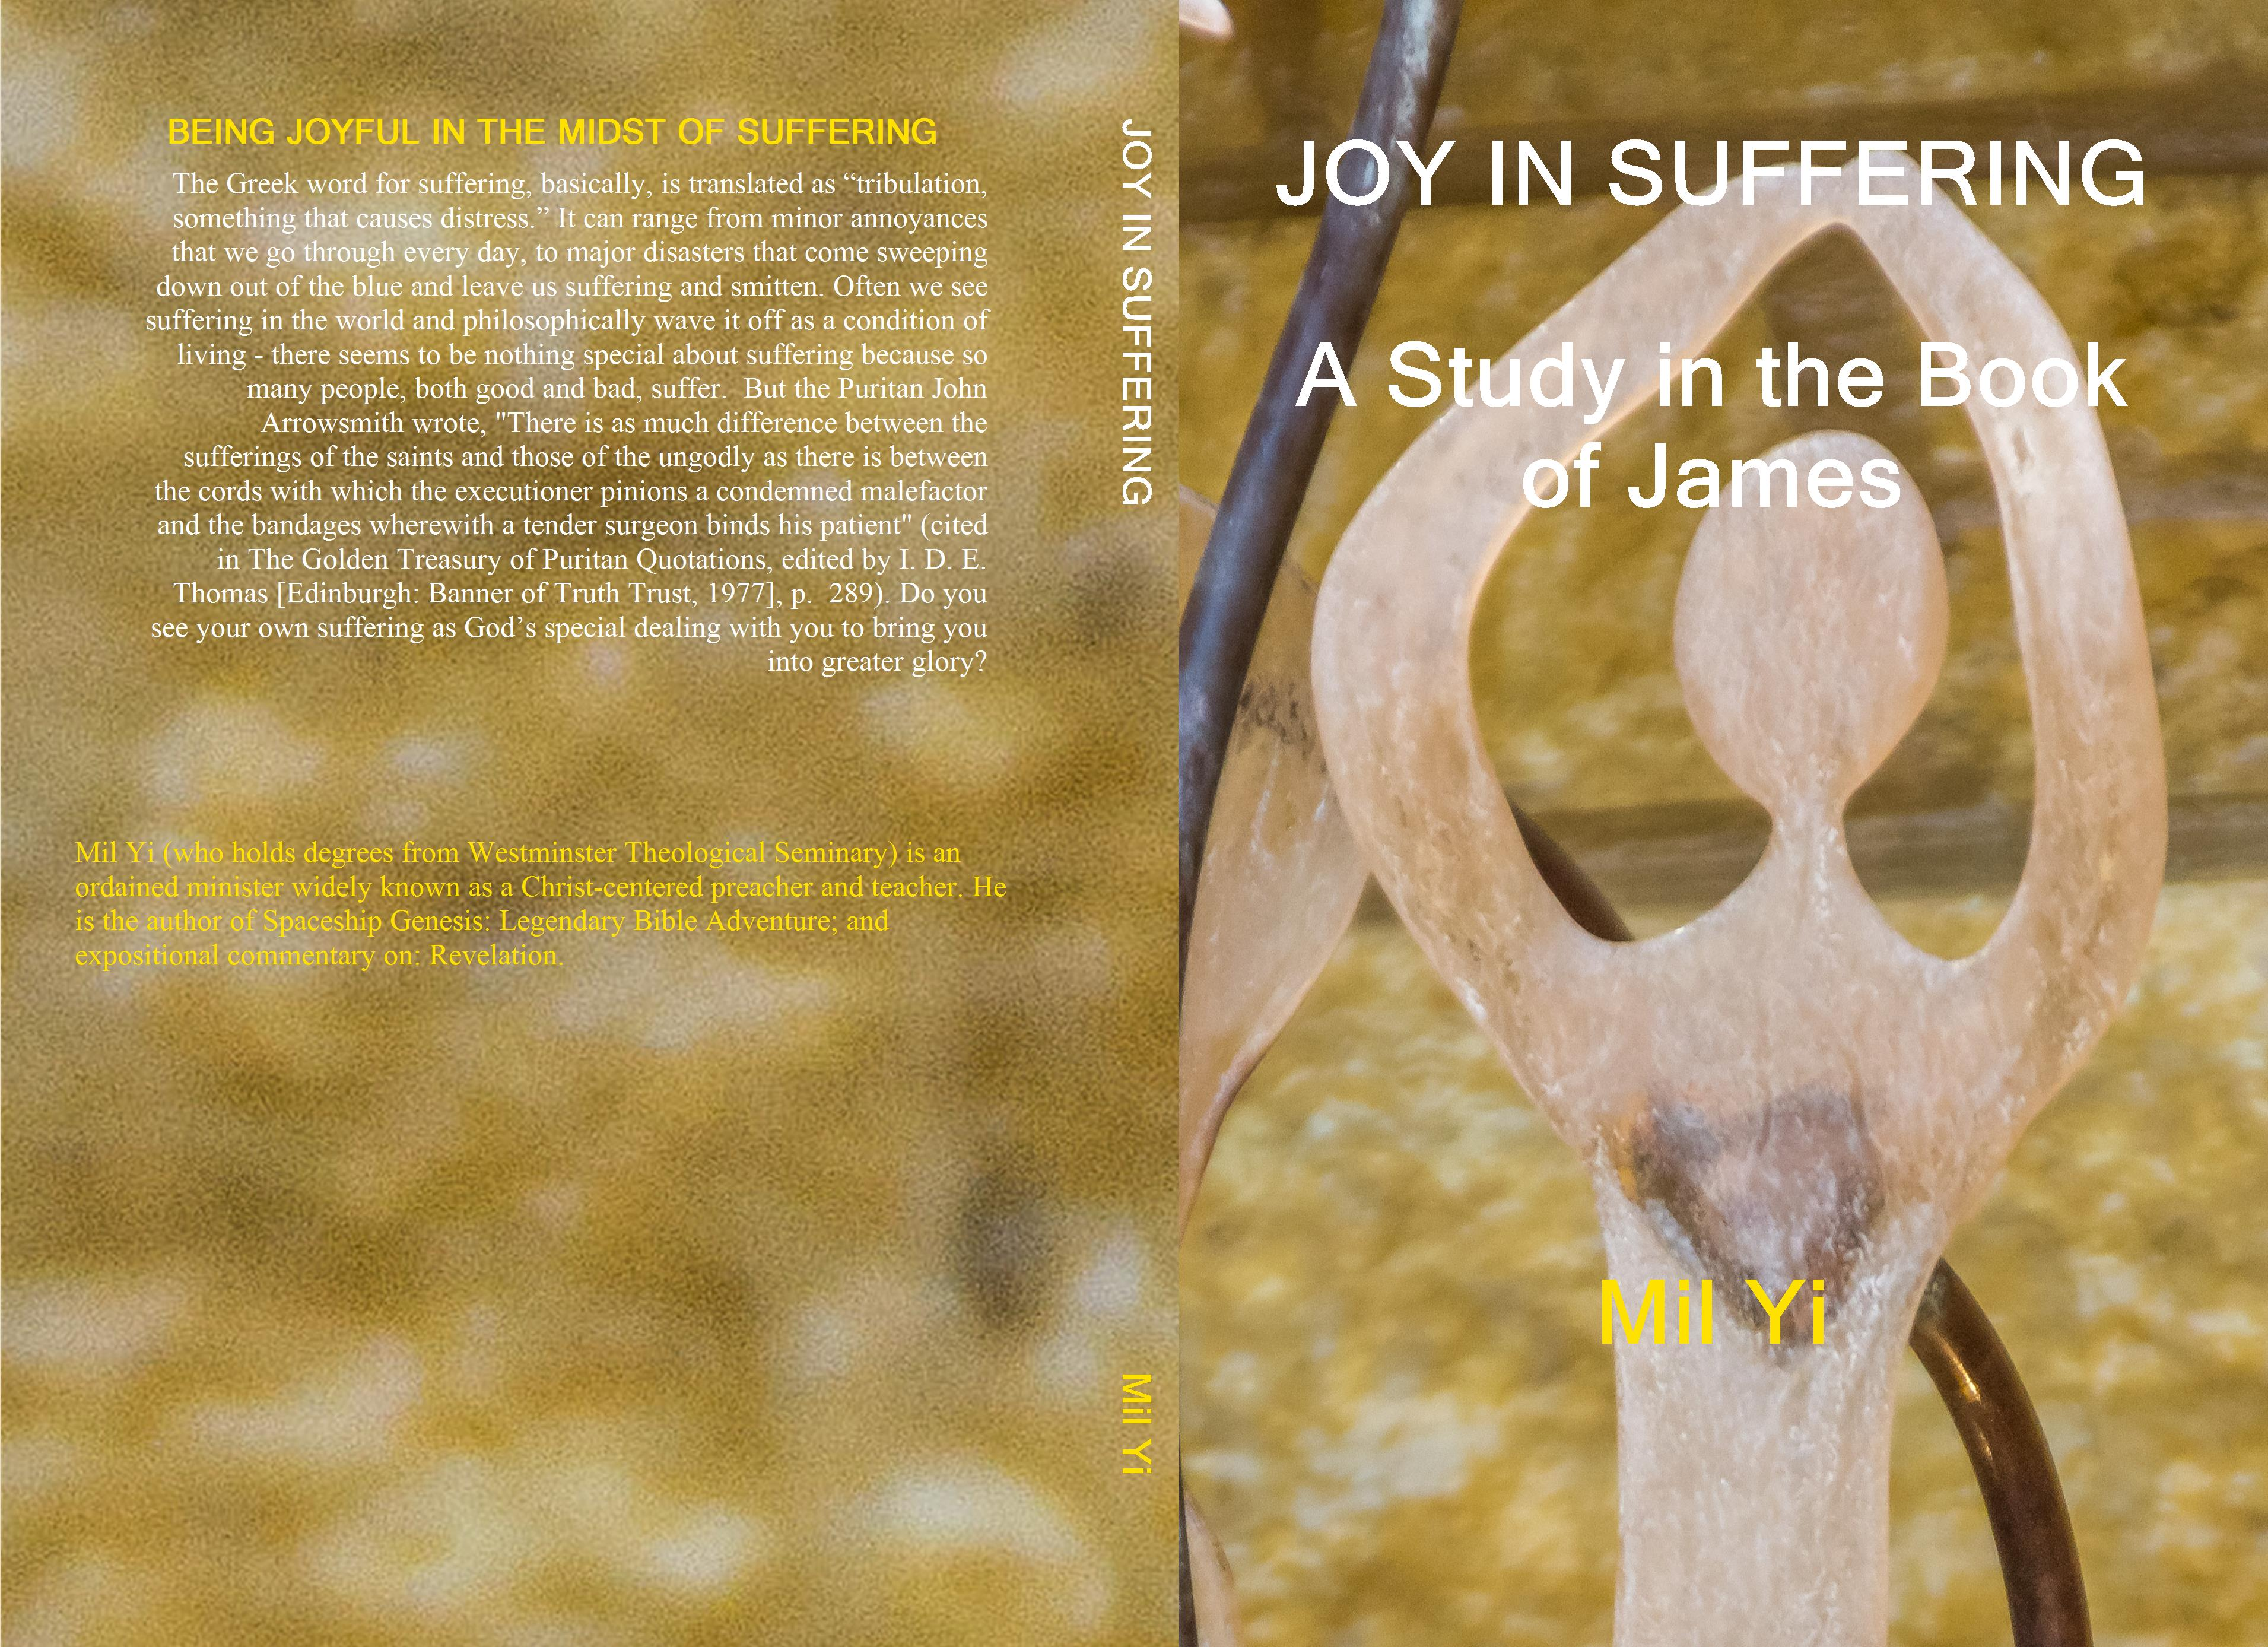 JOY IN SUFFERING A Study in the Book of James cover image